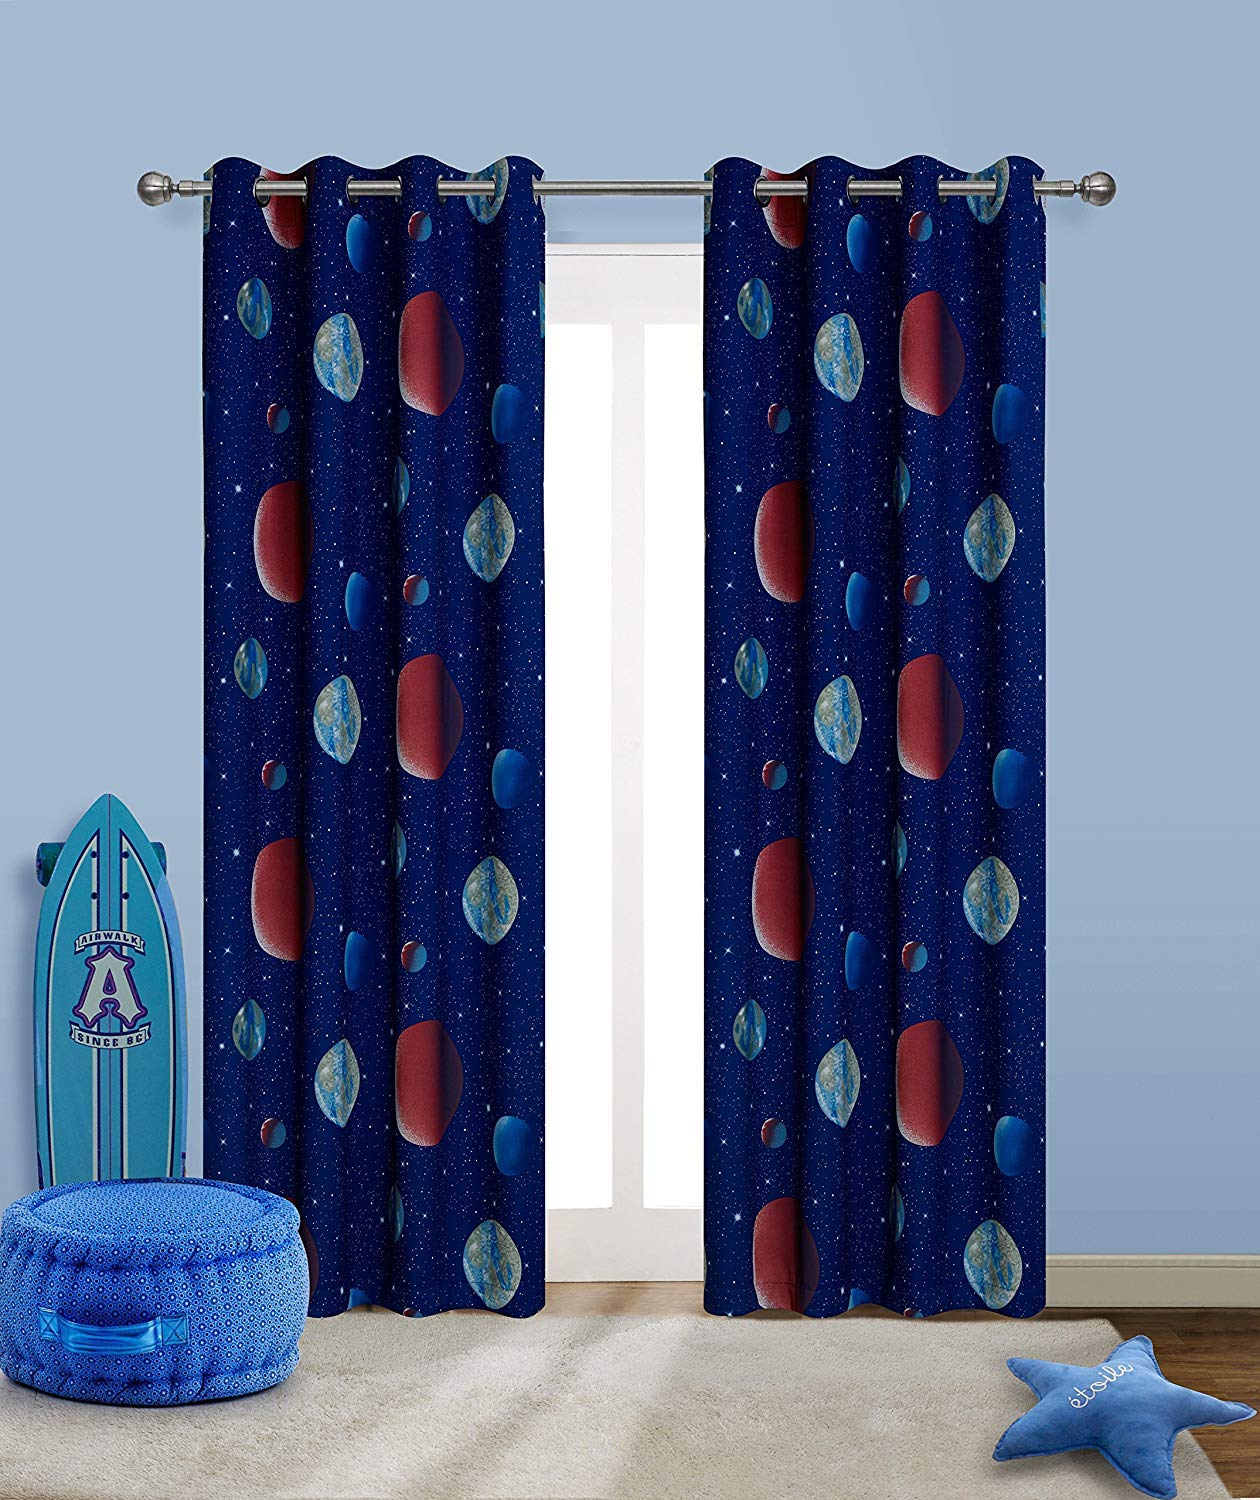 2 Panels Black W52 x L63 Inches Grommet Thermal Insulated Window Curtains Anjee Black Blackout Curtains with Silver Star Print for Kids Room